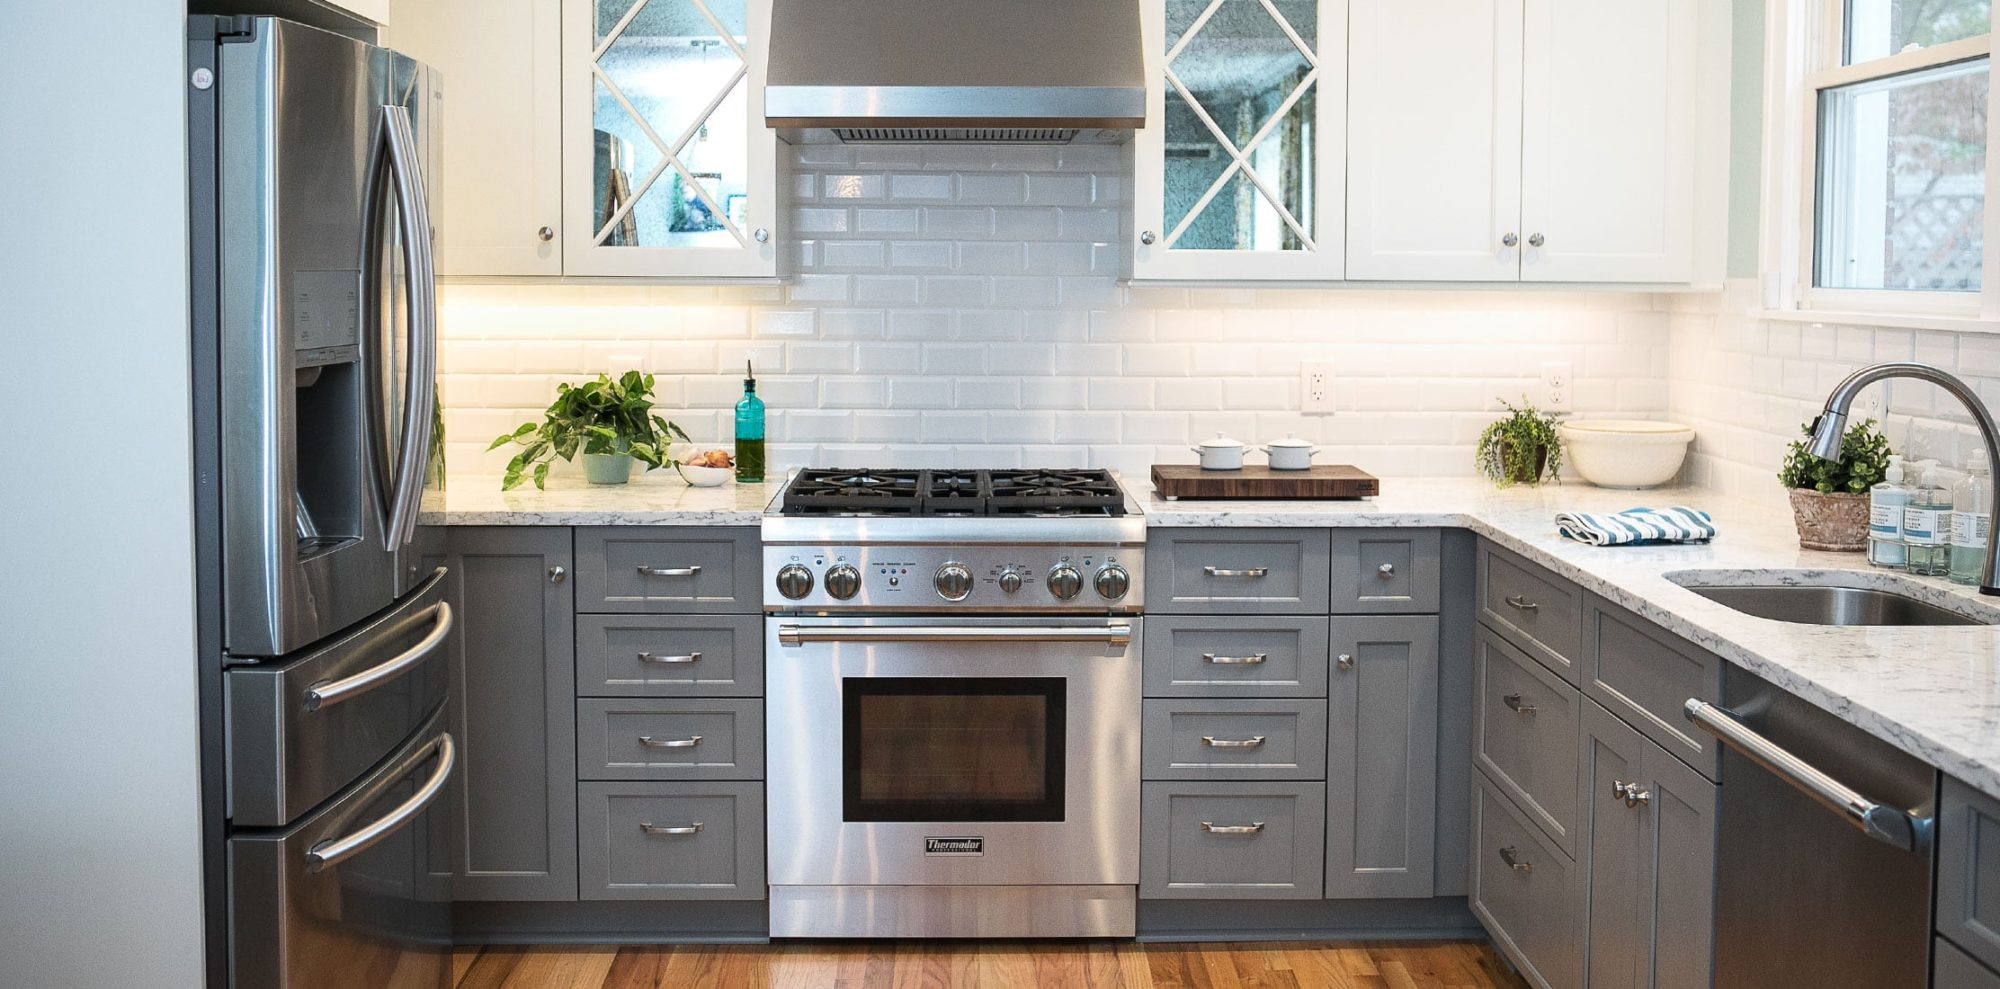 Crisp gray drawers against white mirrored cabinets in renovated kitchen